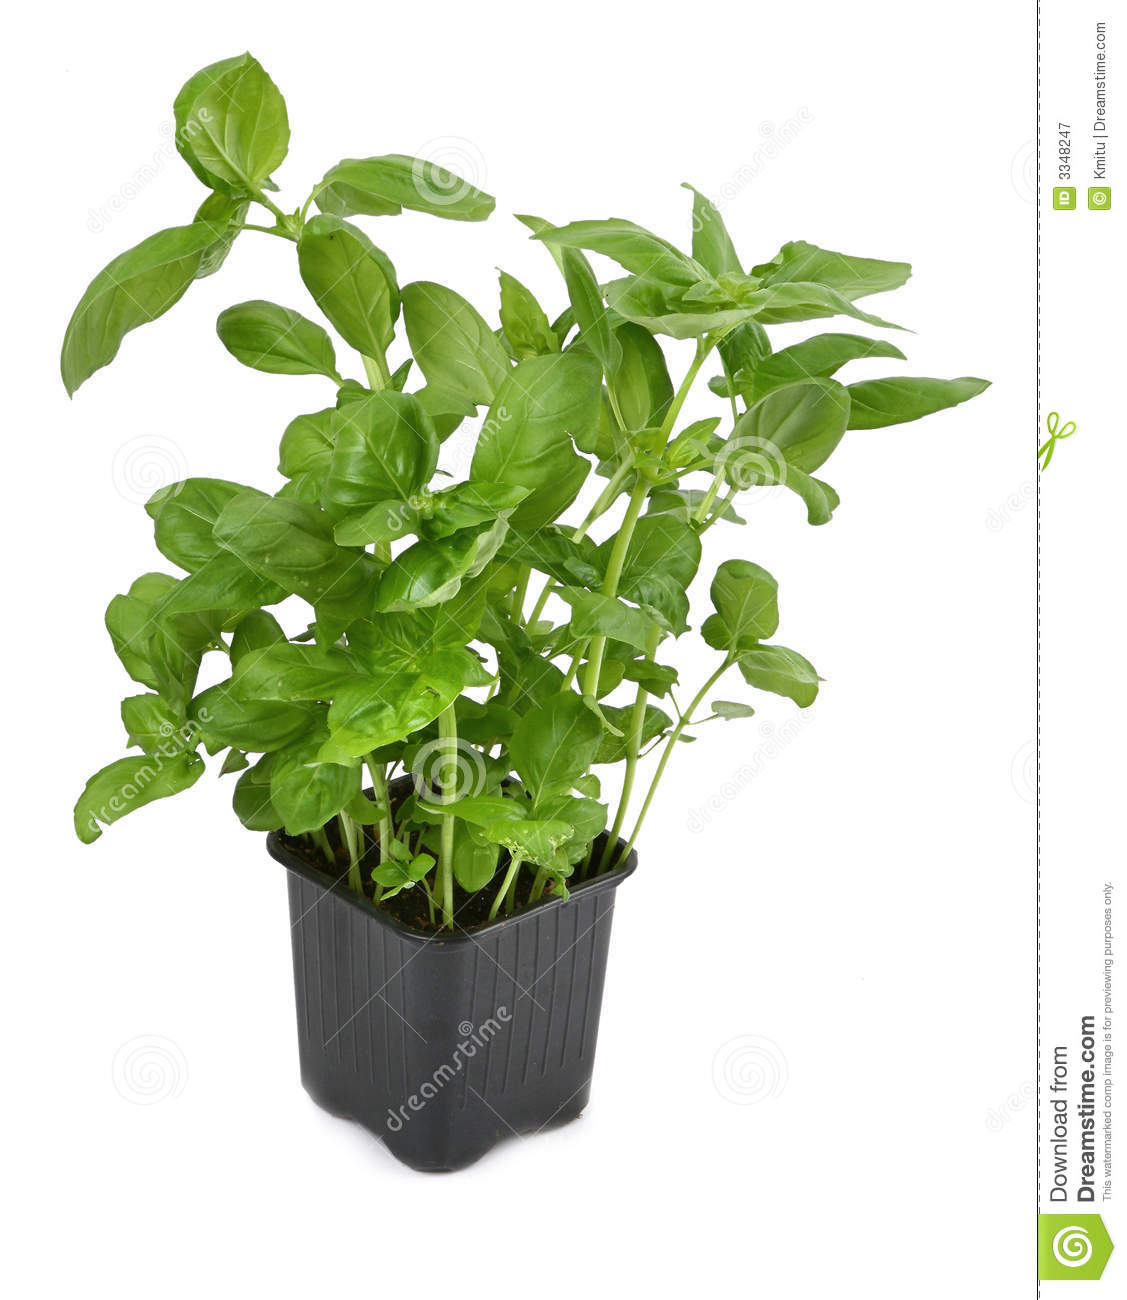 fresh basil plant in pot royalty free stock photography image 3348247. Black Bedroom Furniture Sets. Home Design Ideas